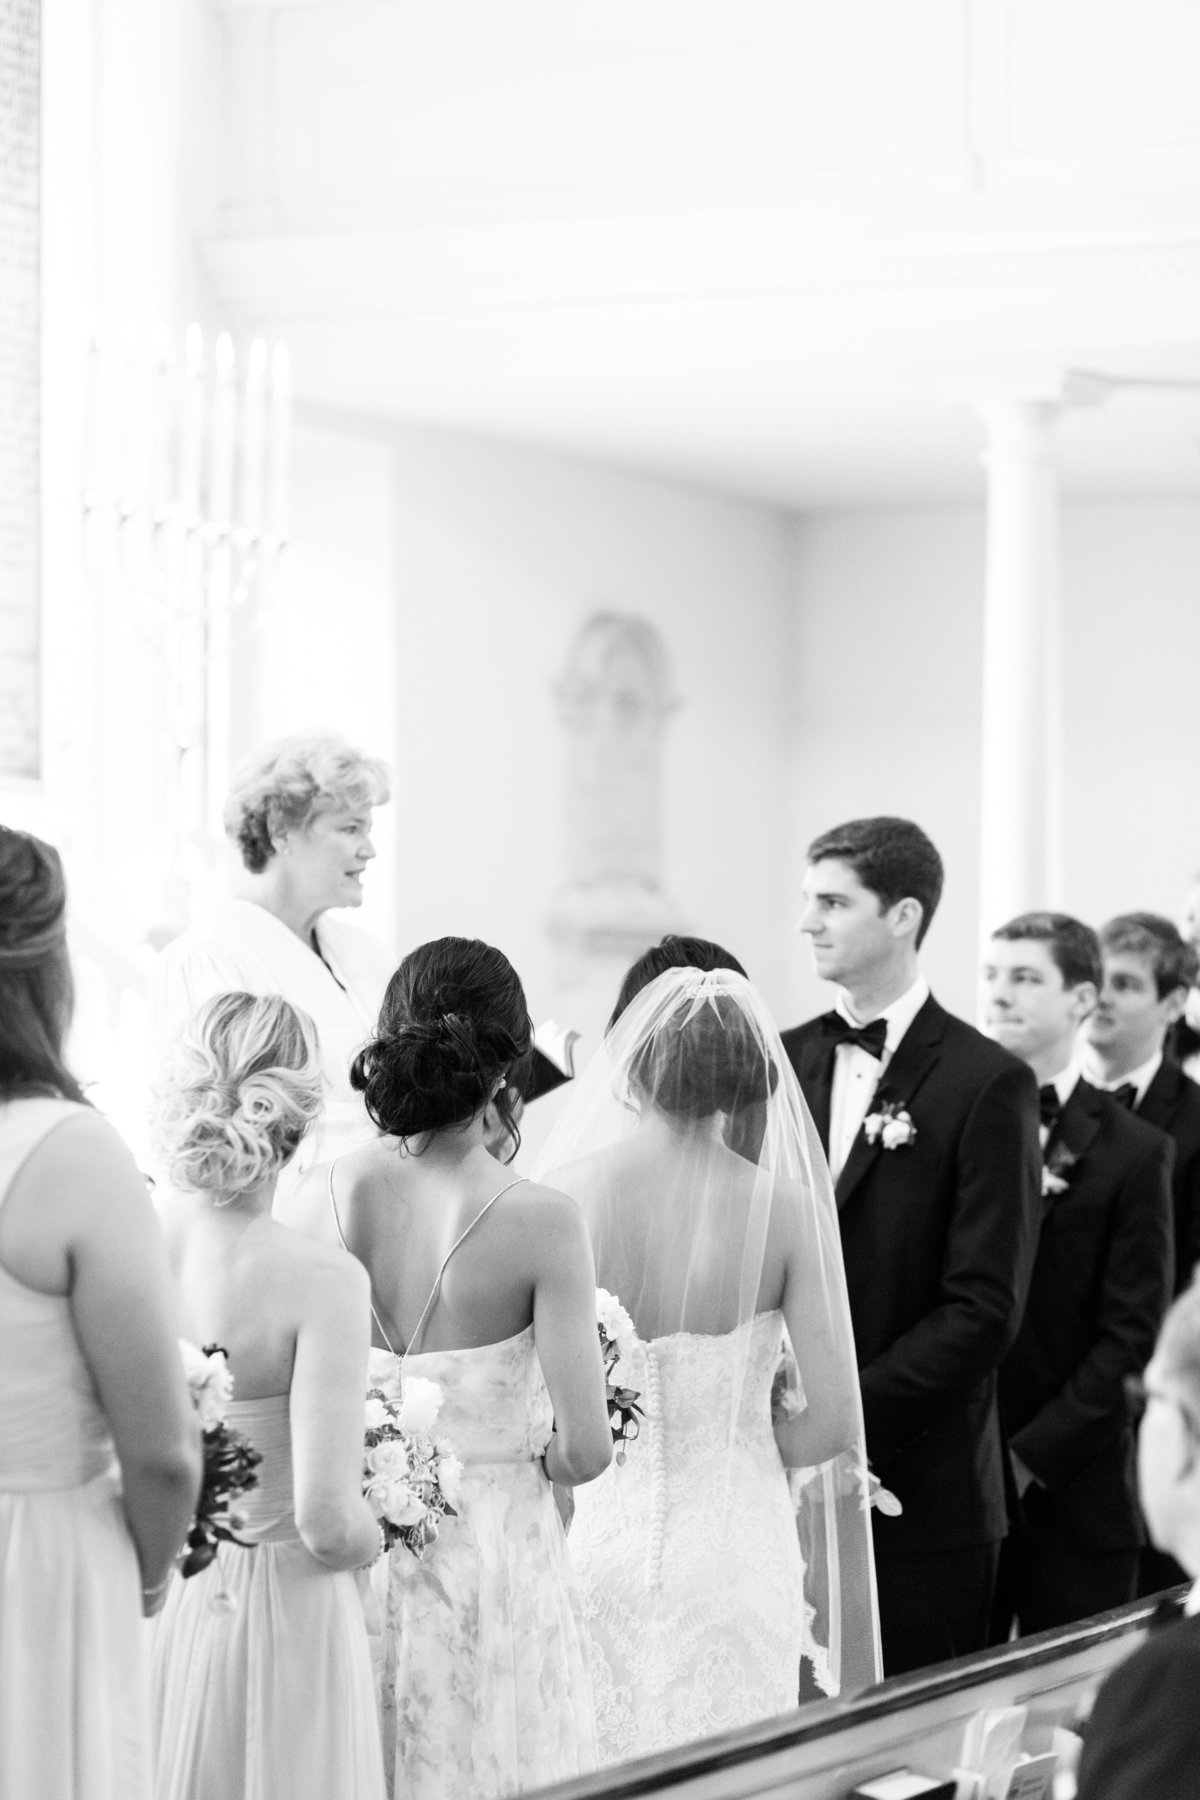 alexandria-va-stieff-wedding-ceremony-bethanne-arthur-photography-photos-74